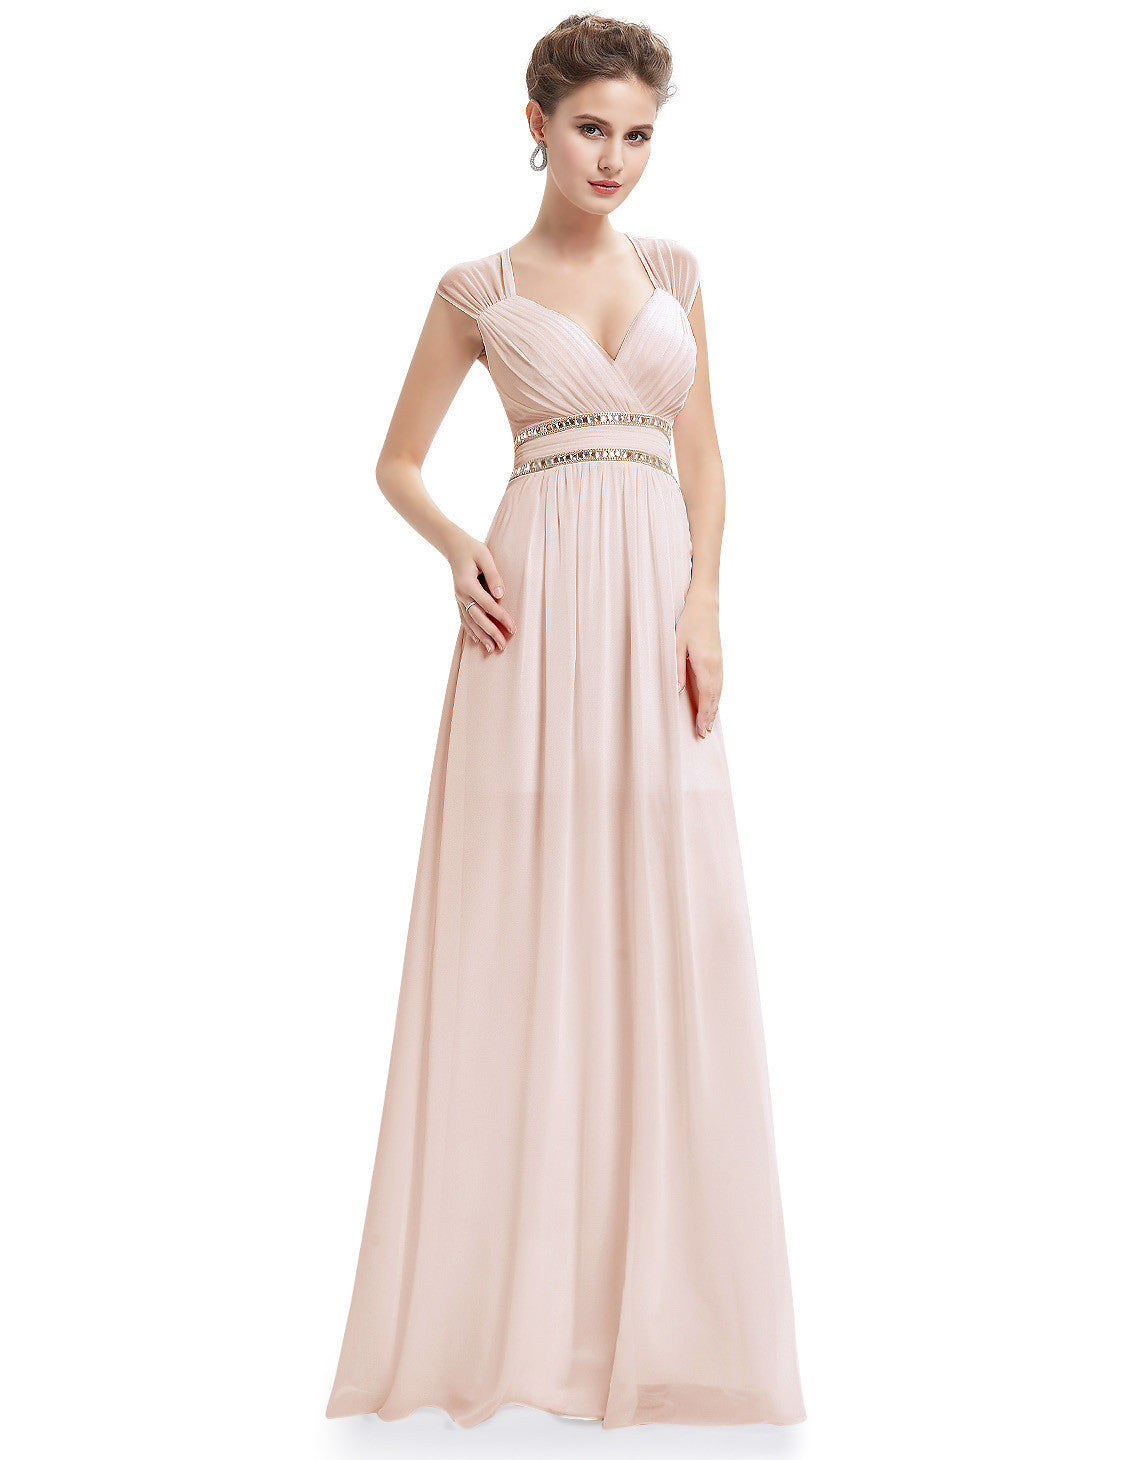 Obeige Elegant V-neck Long Evening Dress